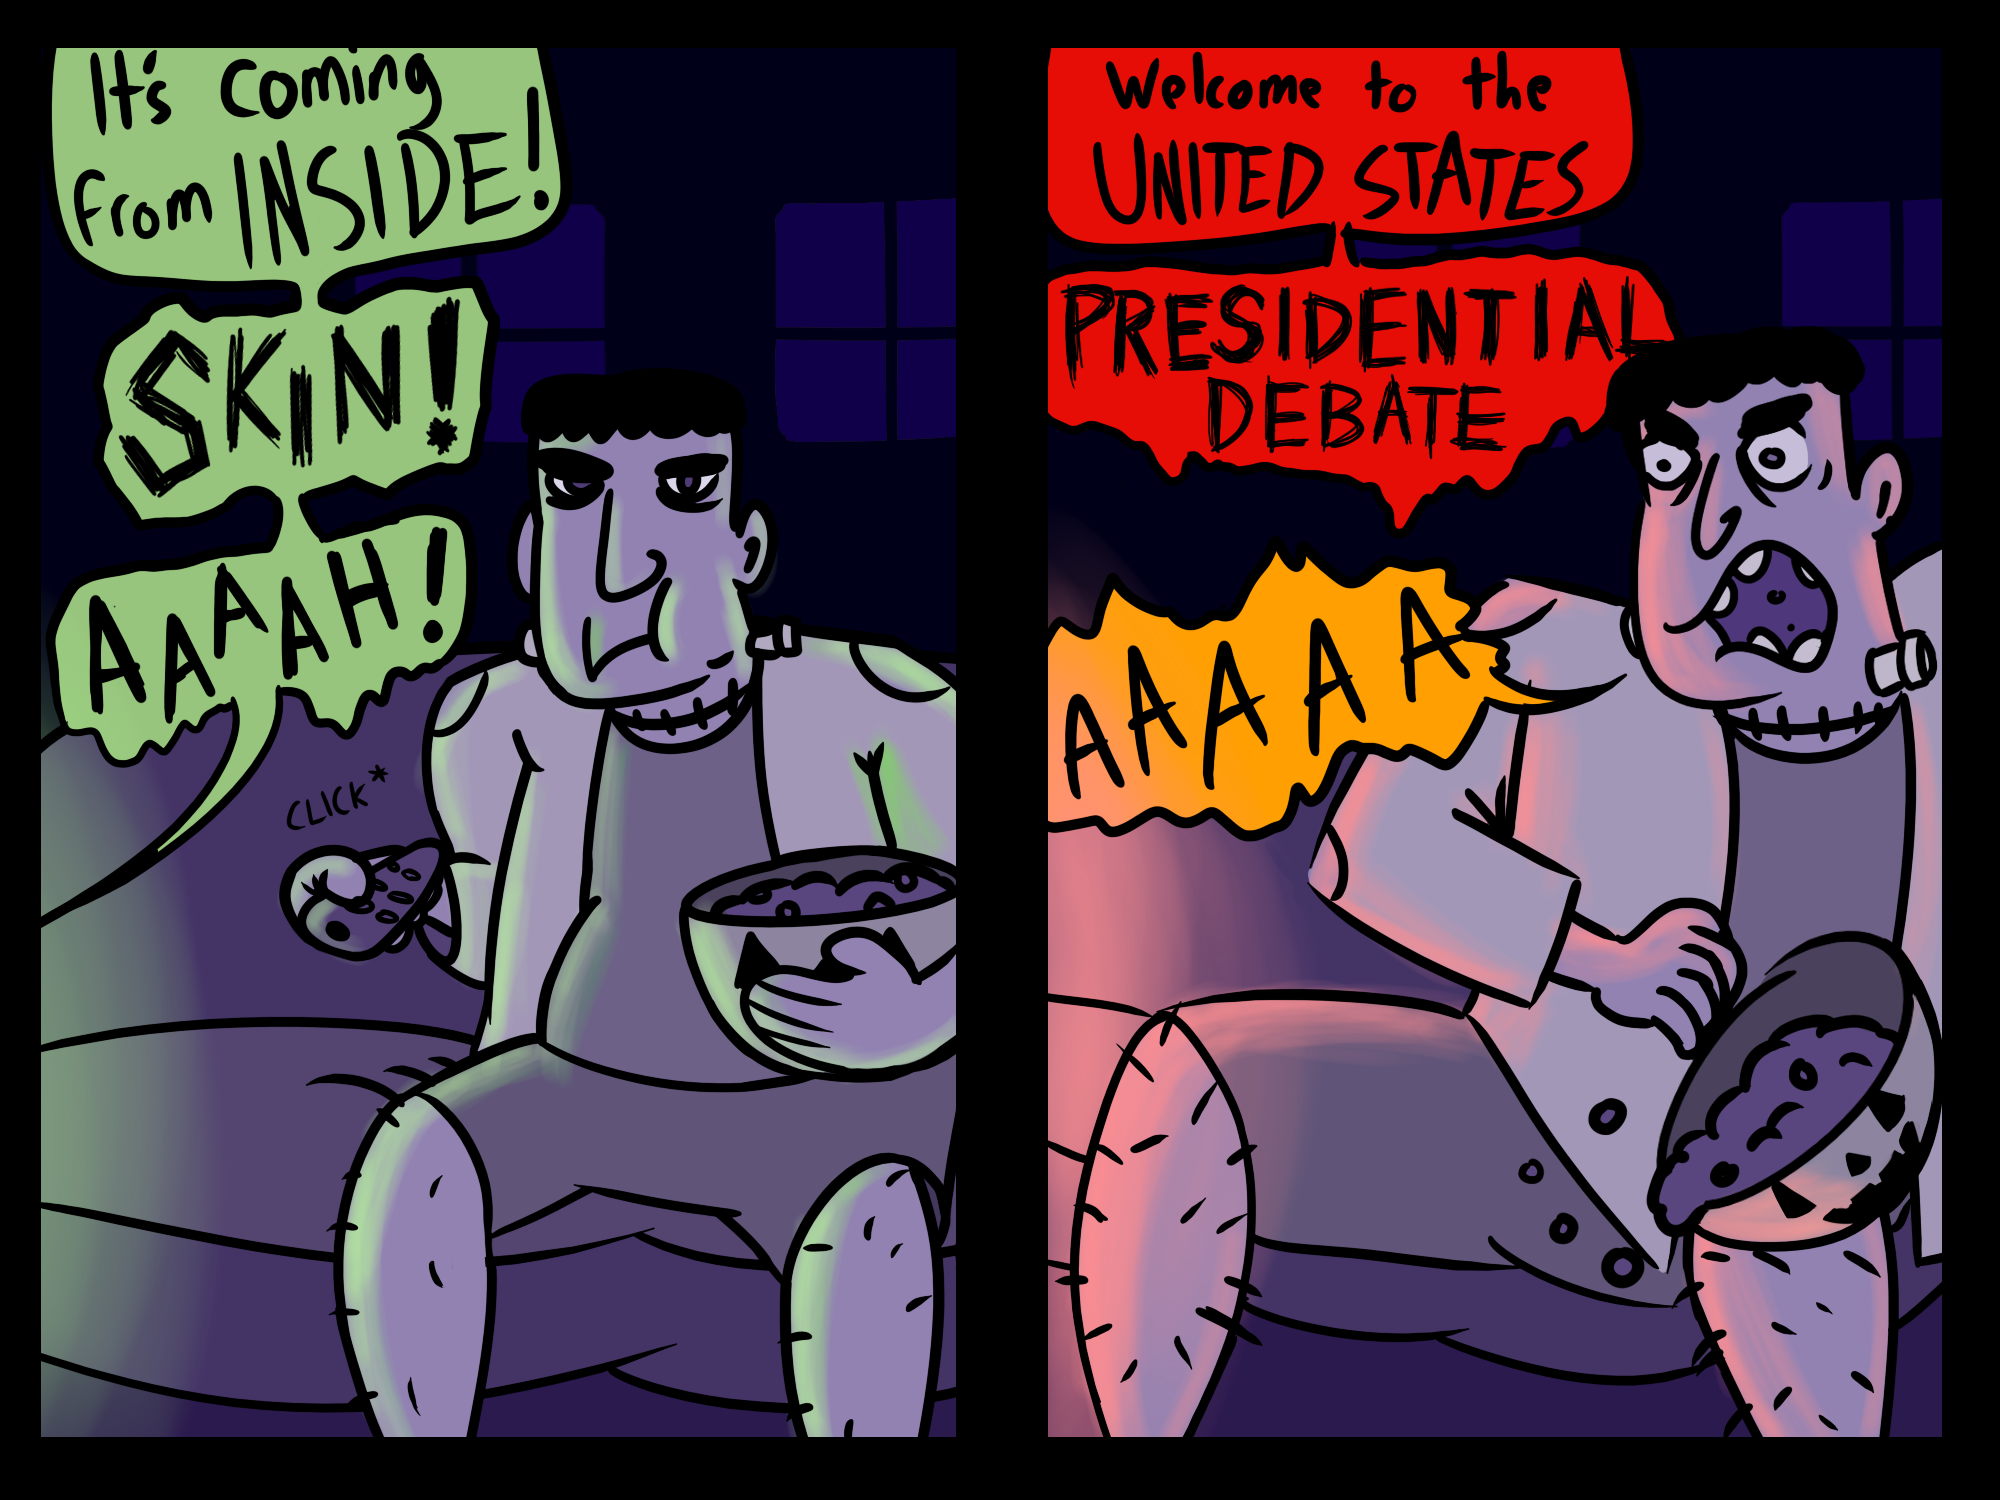 Comic with first cell showing Frankenstein's monster calmly watching a horror movie. Next cell shows Frankenstein's monster scared when TV announces presidential debate.